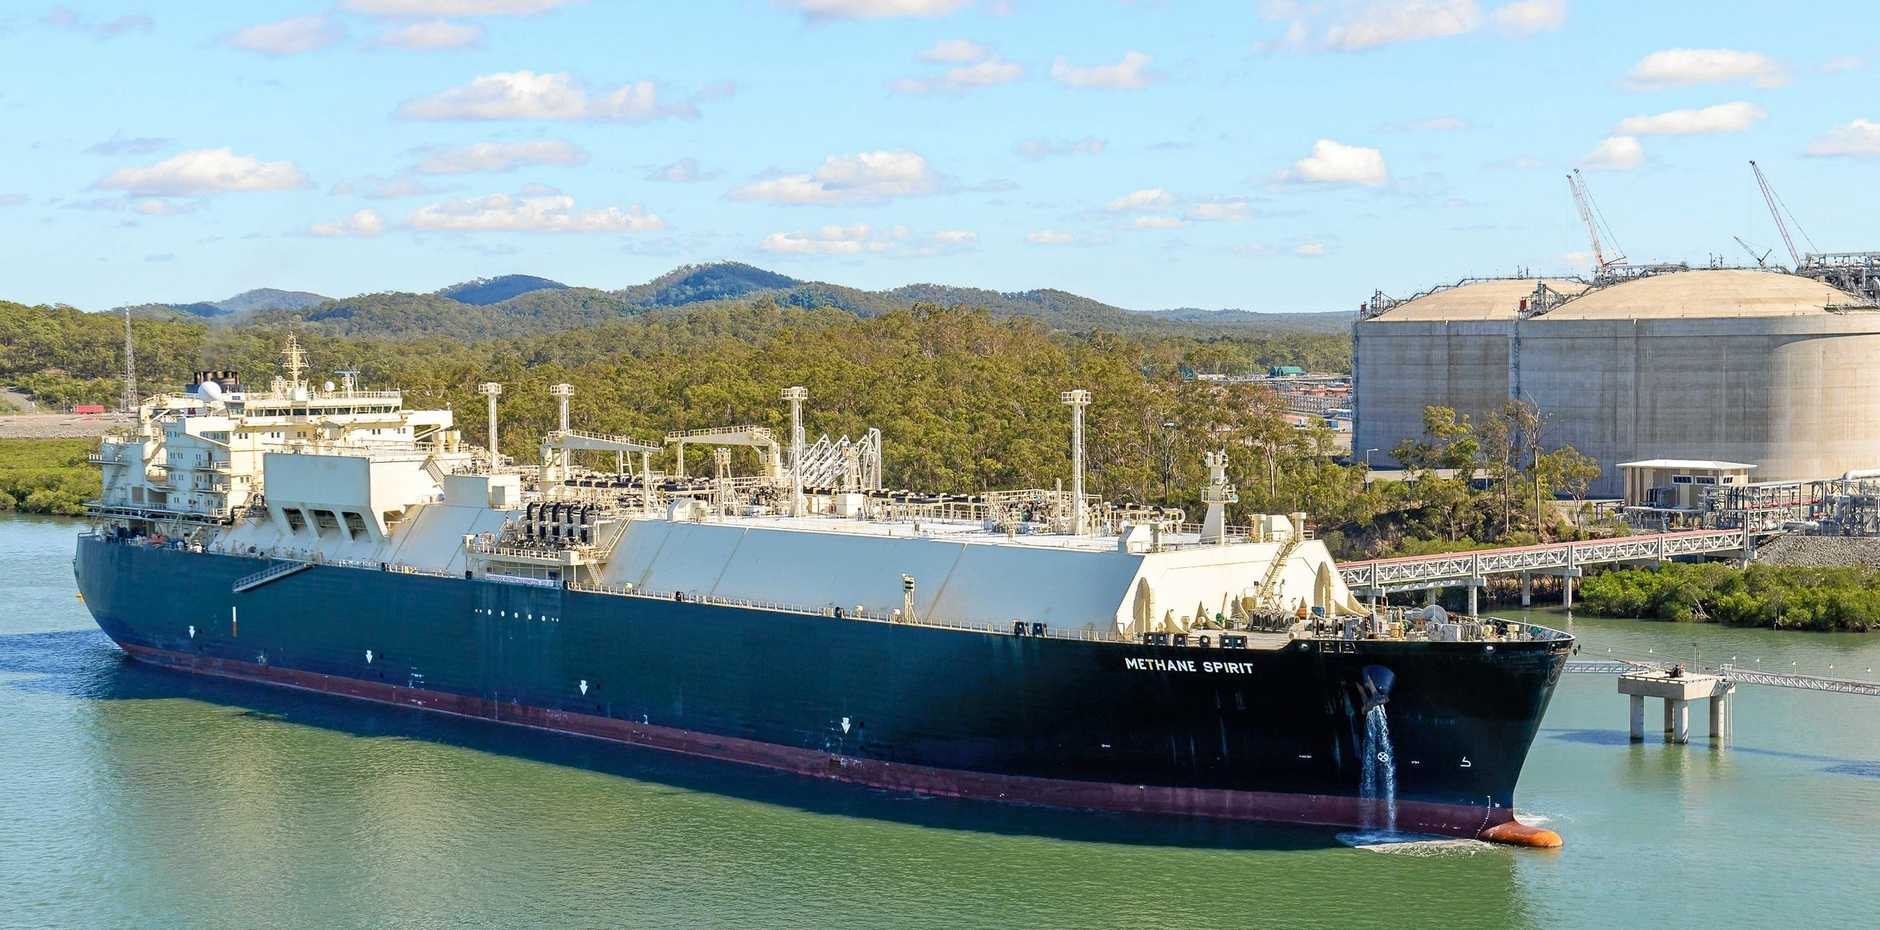 LIQUID GAS: LNG exports were set to increase over the next 12 months in Gladstone.